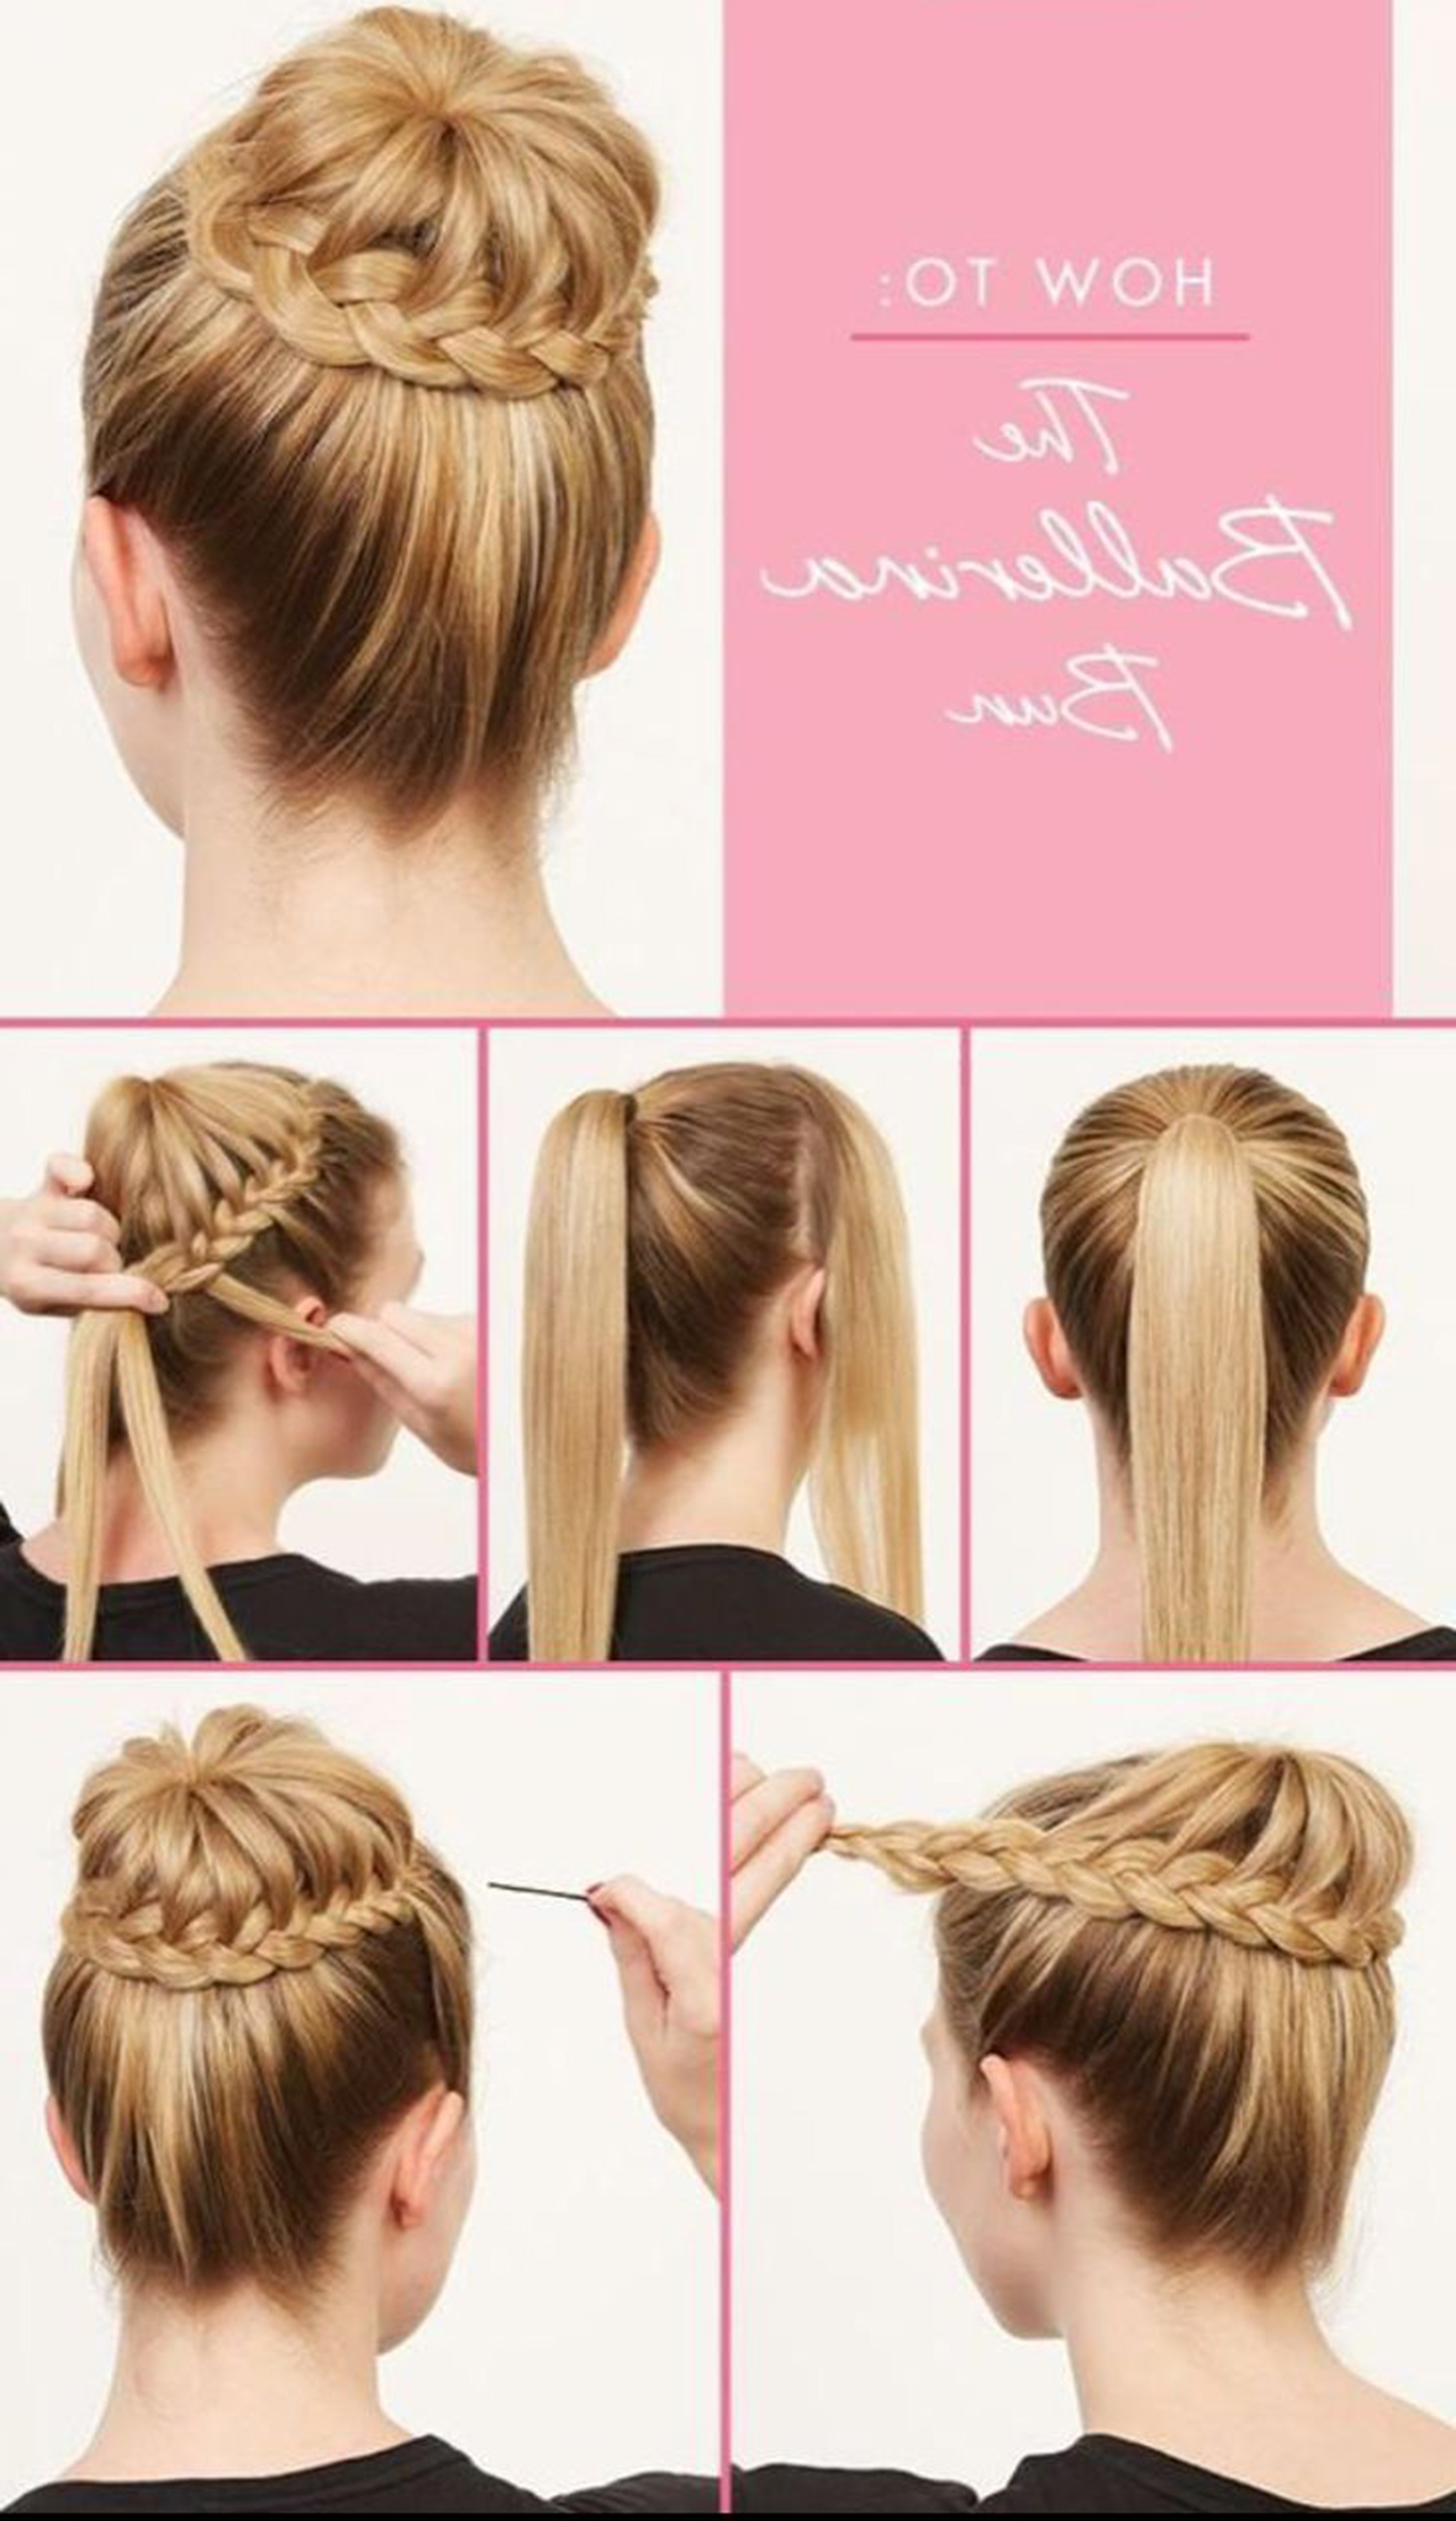 Top 10 Easy Braided Bun Hairstyle Tutorials For Every Hair Length! Inside Best And Newest Braided Bun Hairstyles (View 10 of 15)